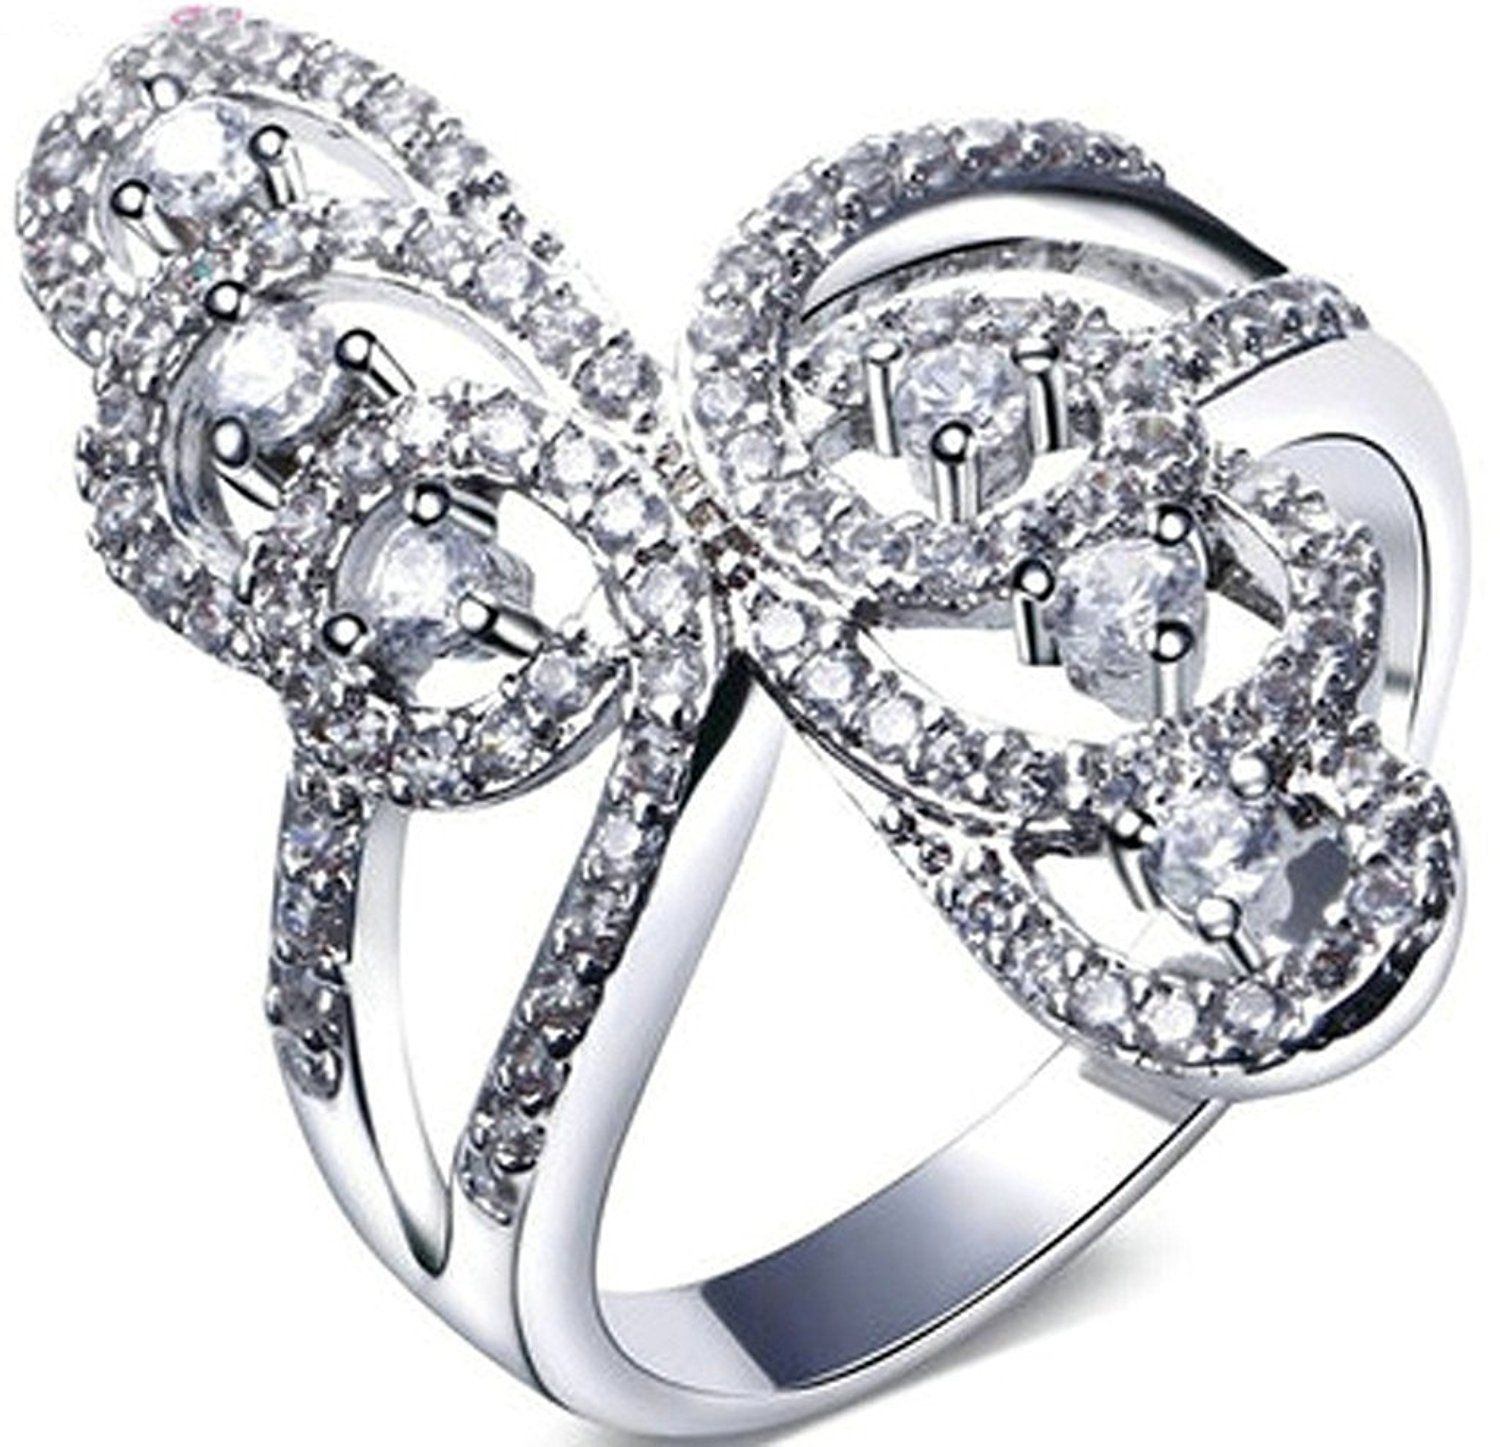 Alimab Jewelery Rings Gold Plated Womens Promise Rings Butterfly